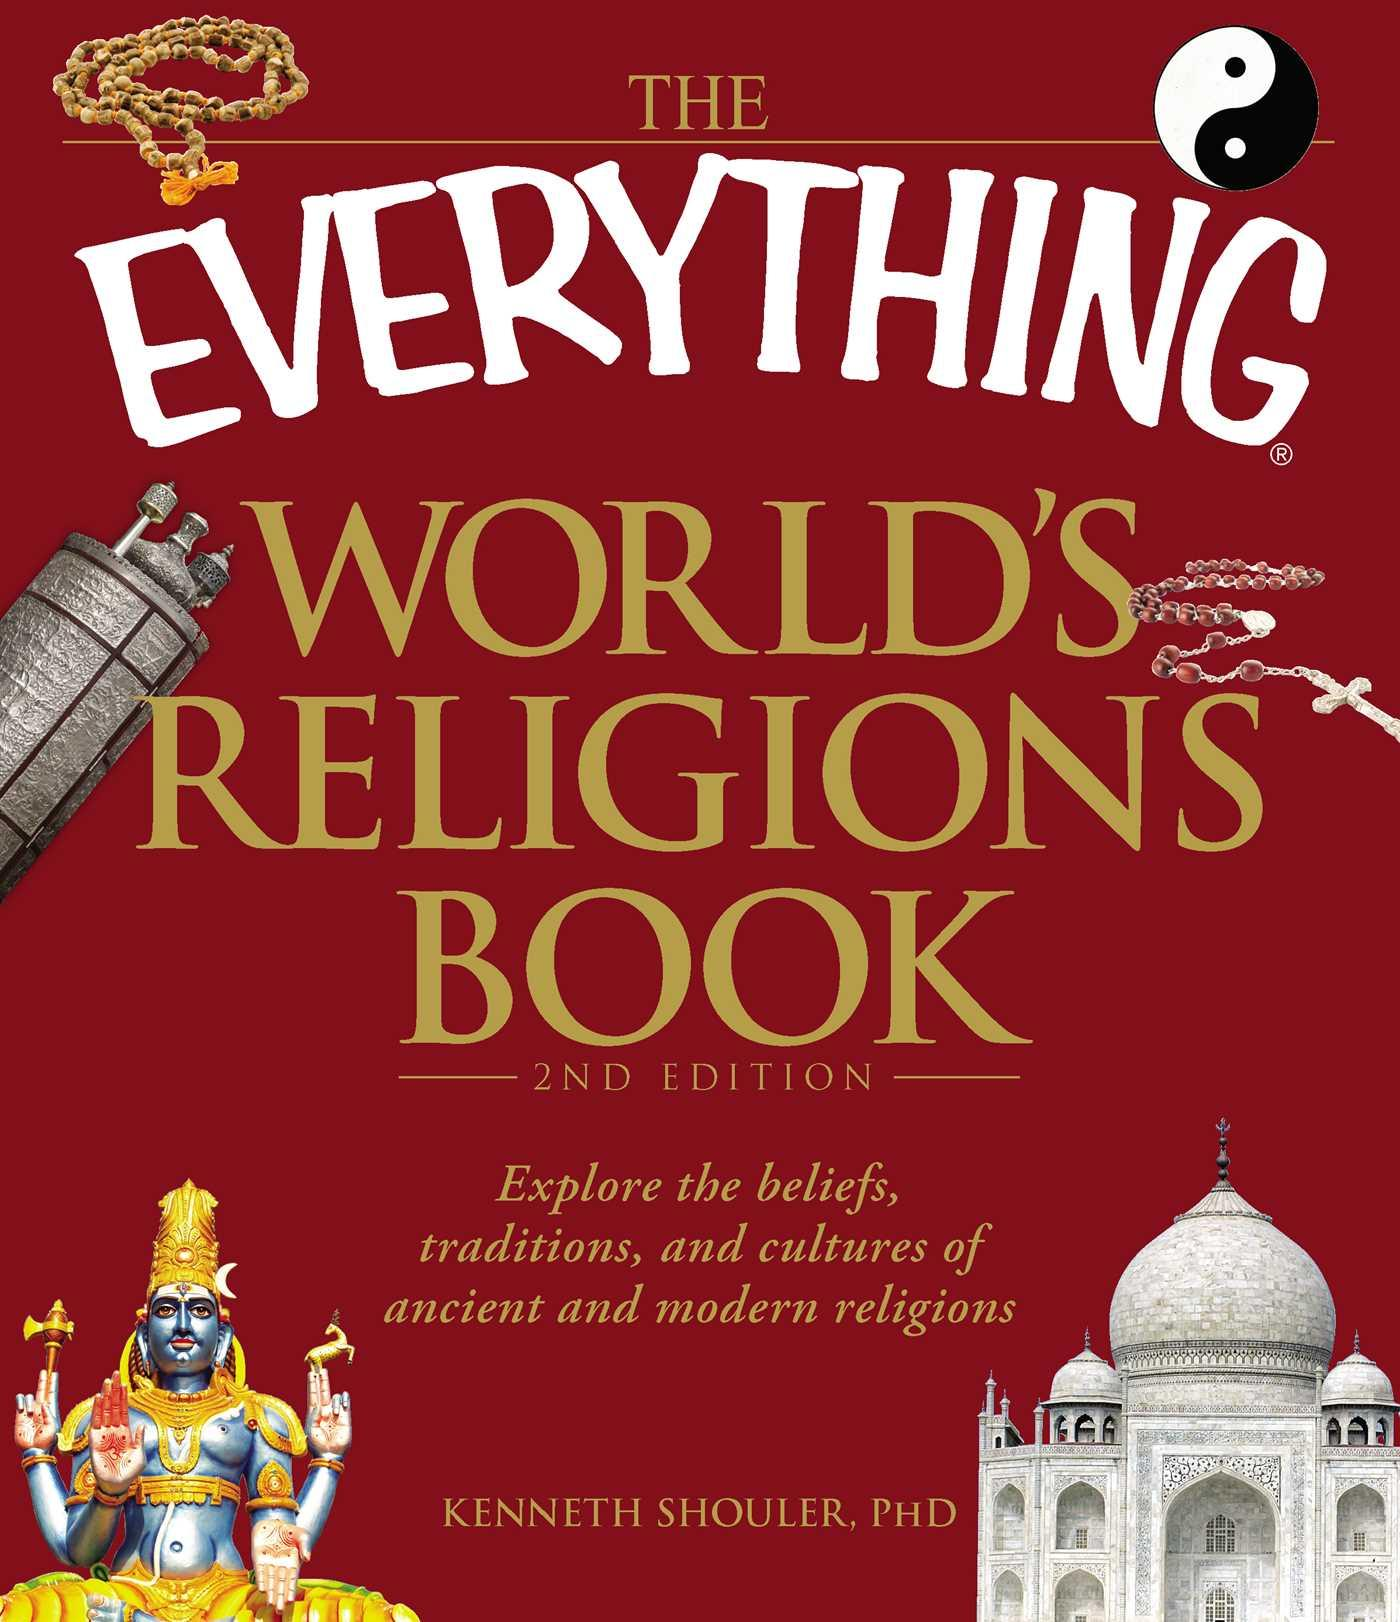 The Everything World's Religions Book